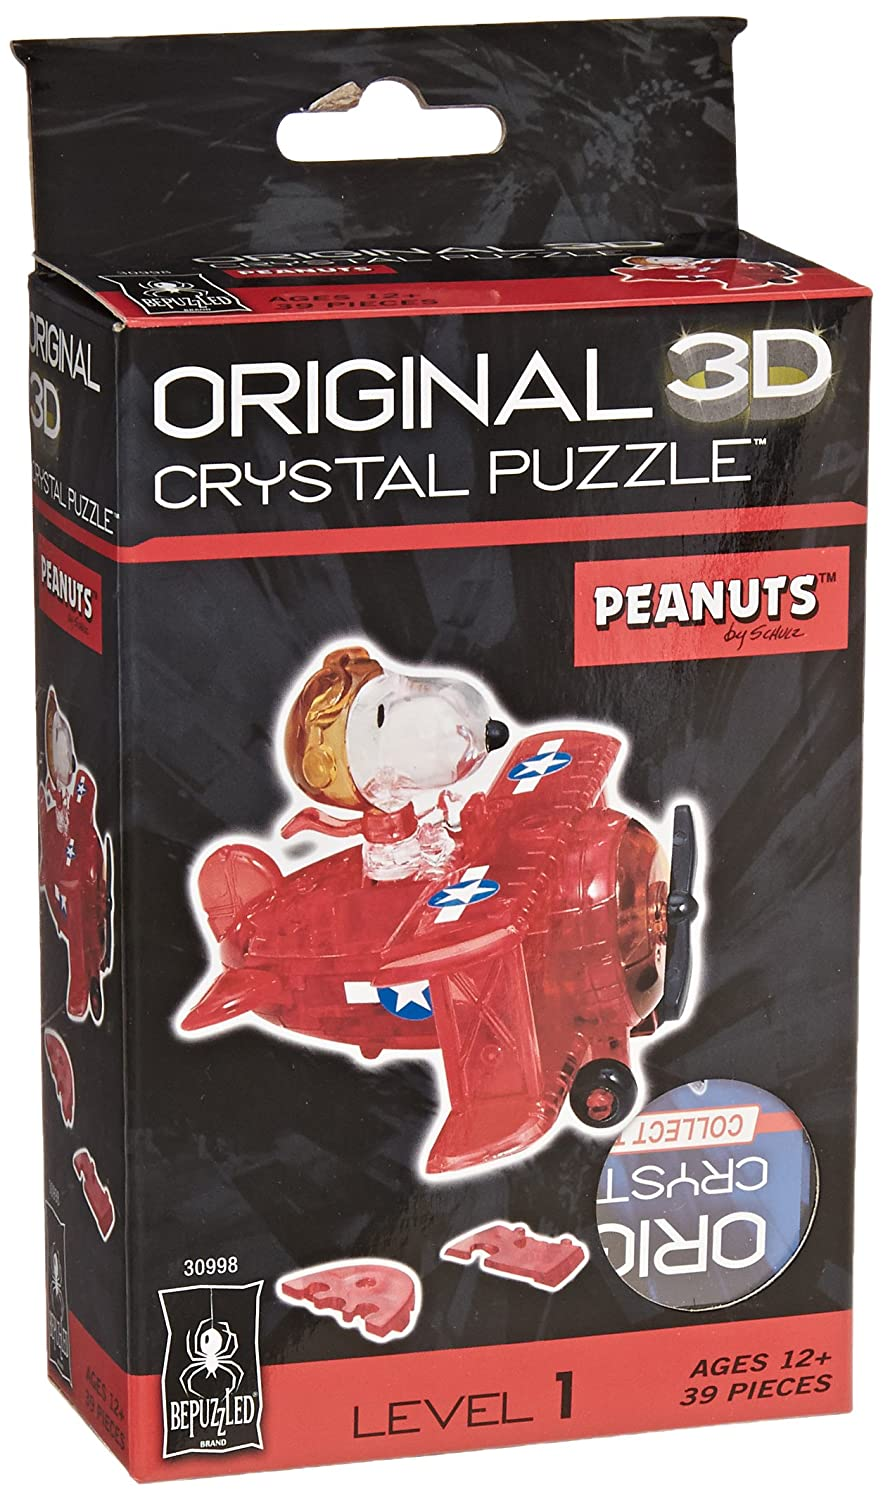 3D Crystal Puzzle Snoopy and Woodstock Game Rejects from Studios 30991